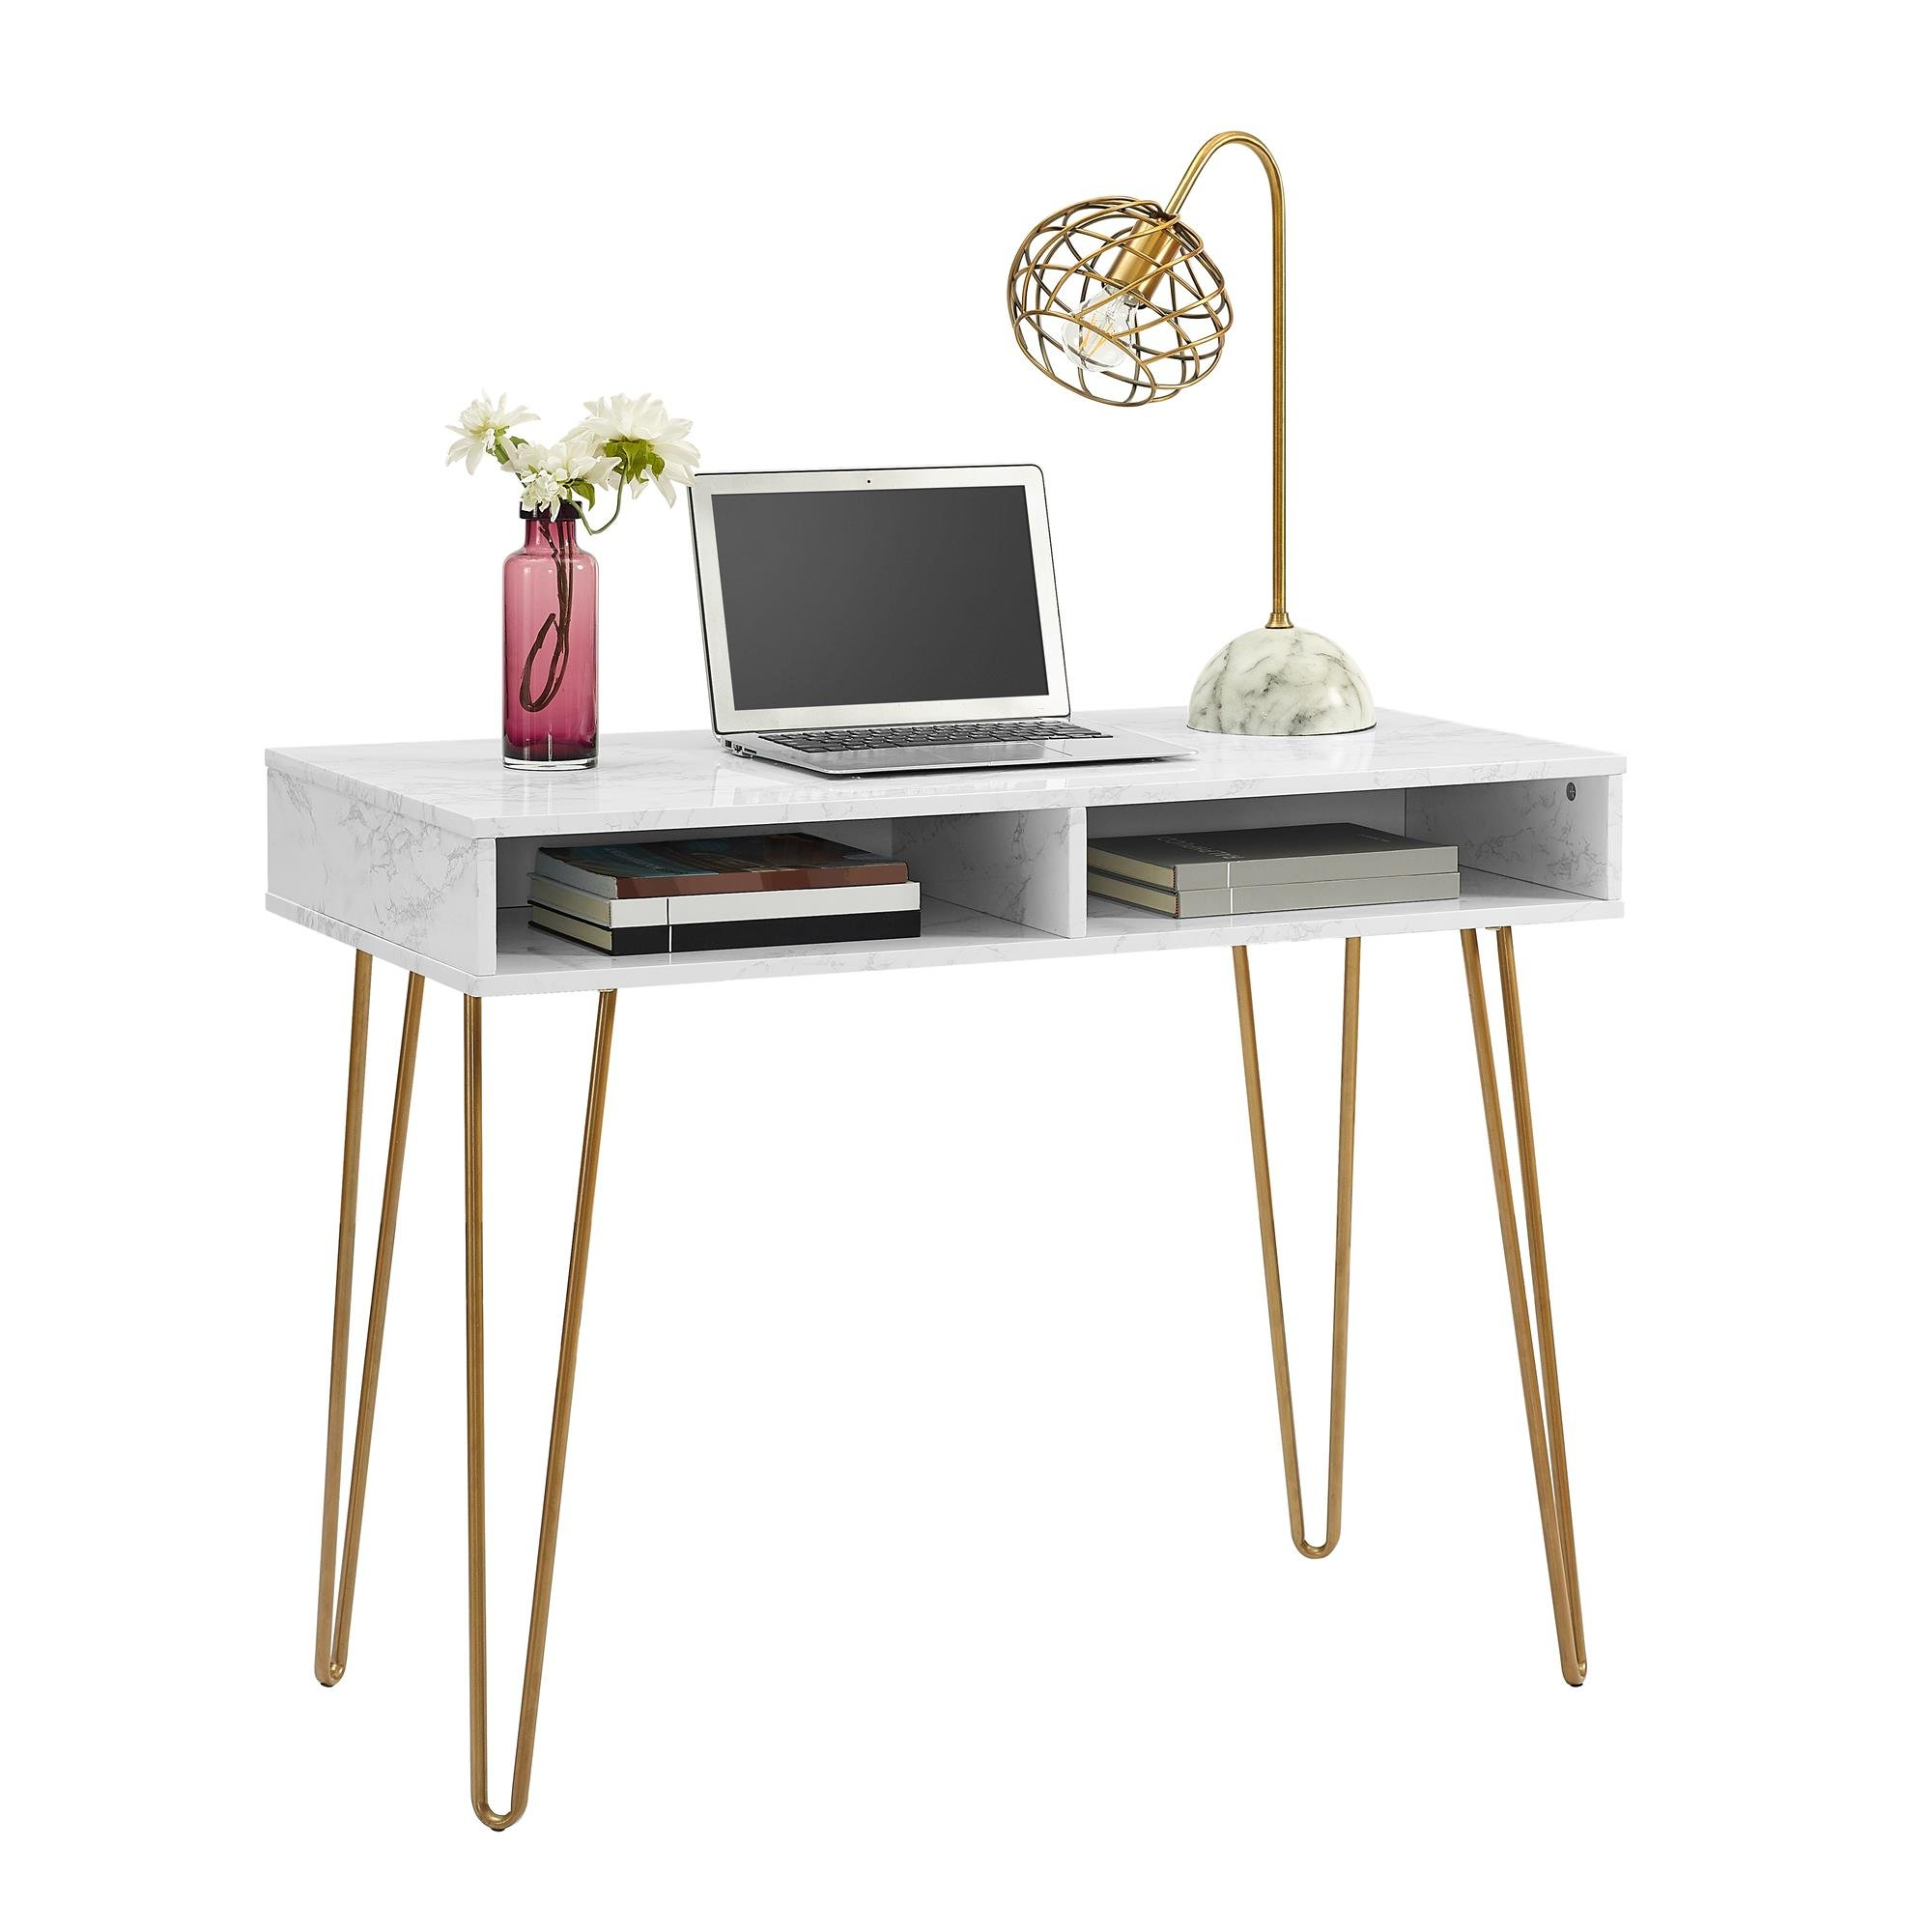 Novogratz Athena Computer Desk with Storage, White Marble